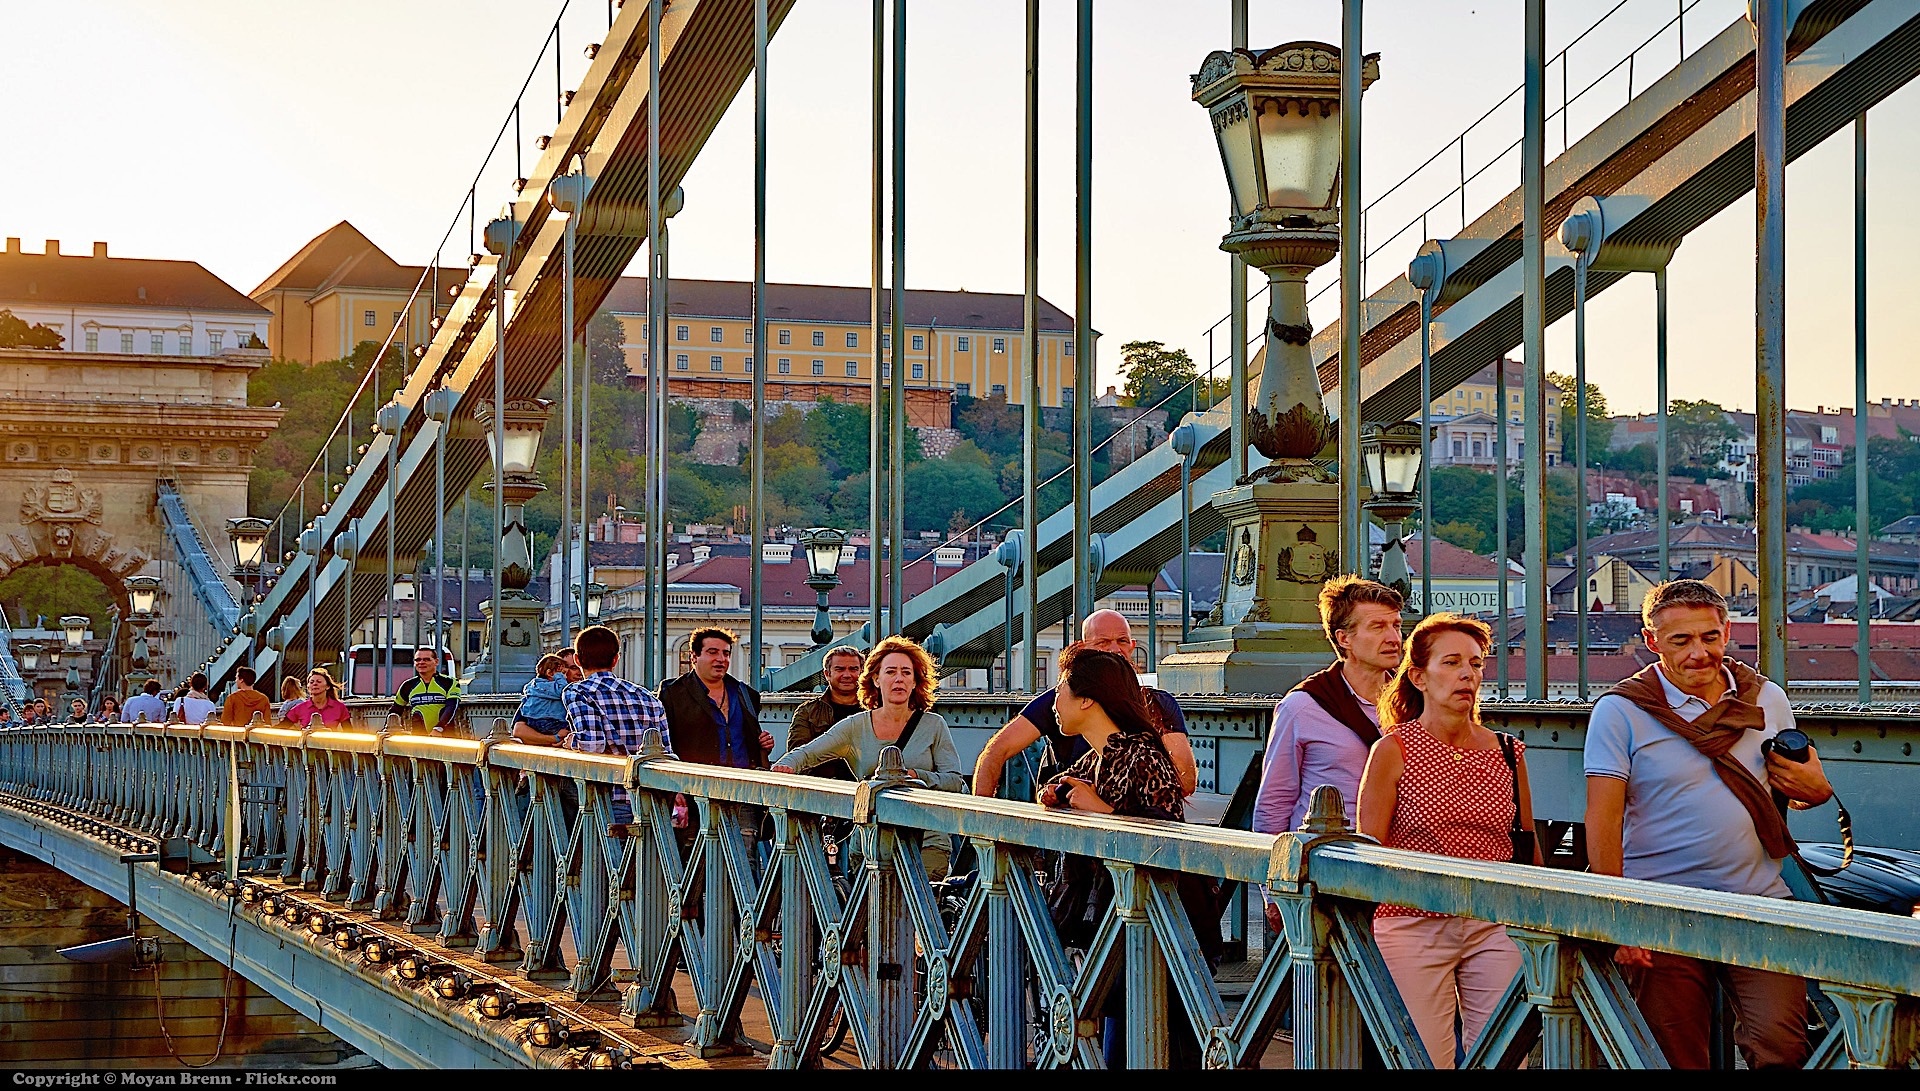 Budapest is in the Top 5 as a Creative and Cultural European City